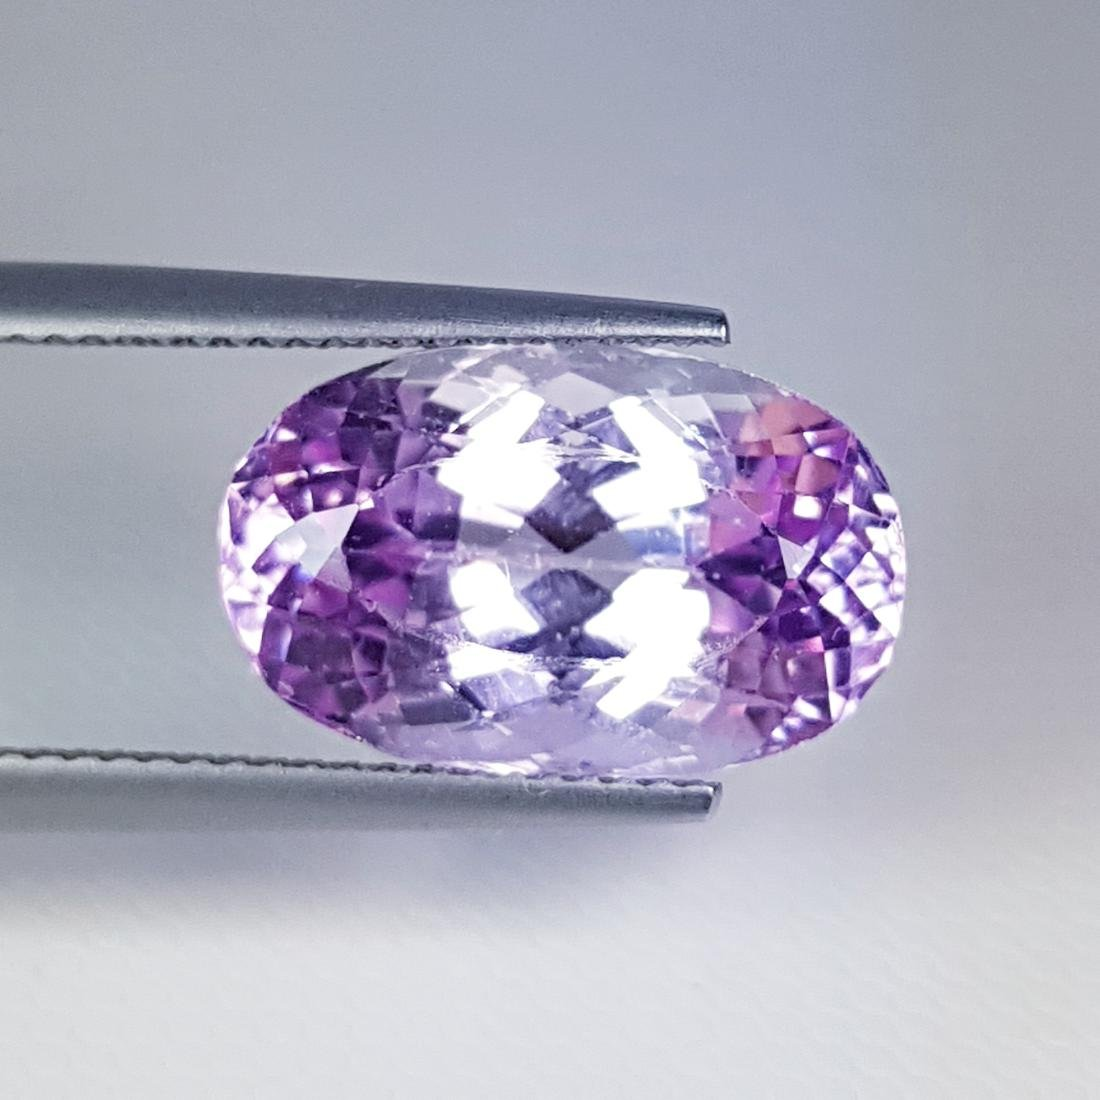 Lovely Gem Oval Cut Natural Pink Kunzite - 9.70 ct